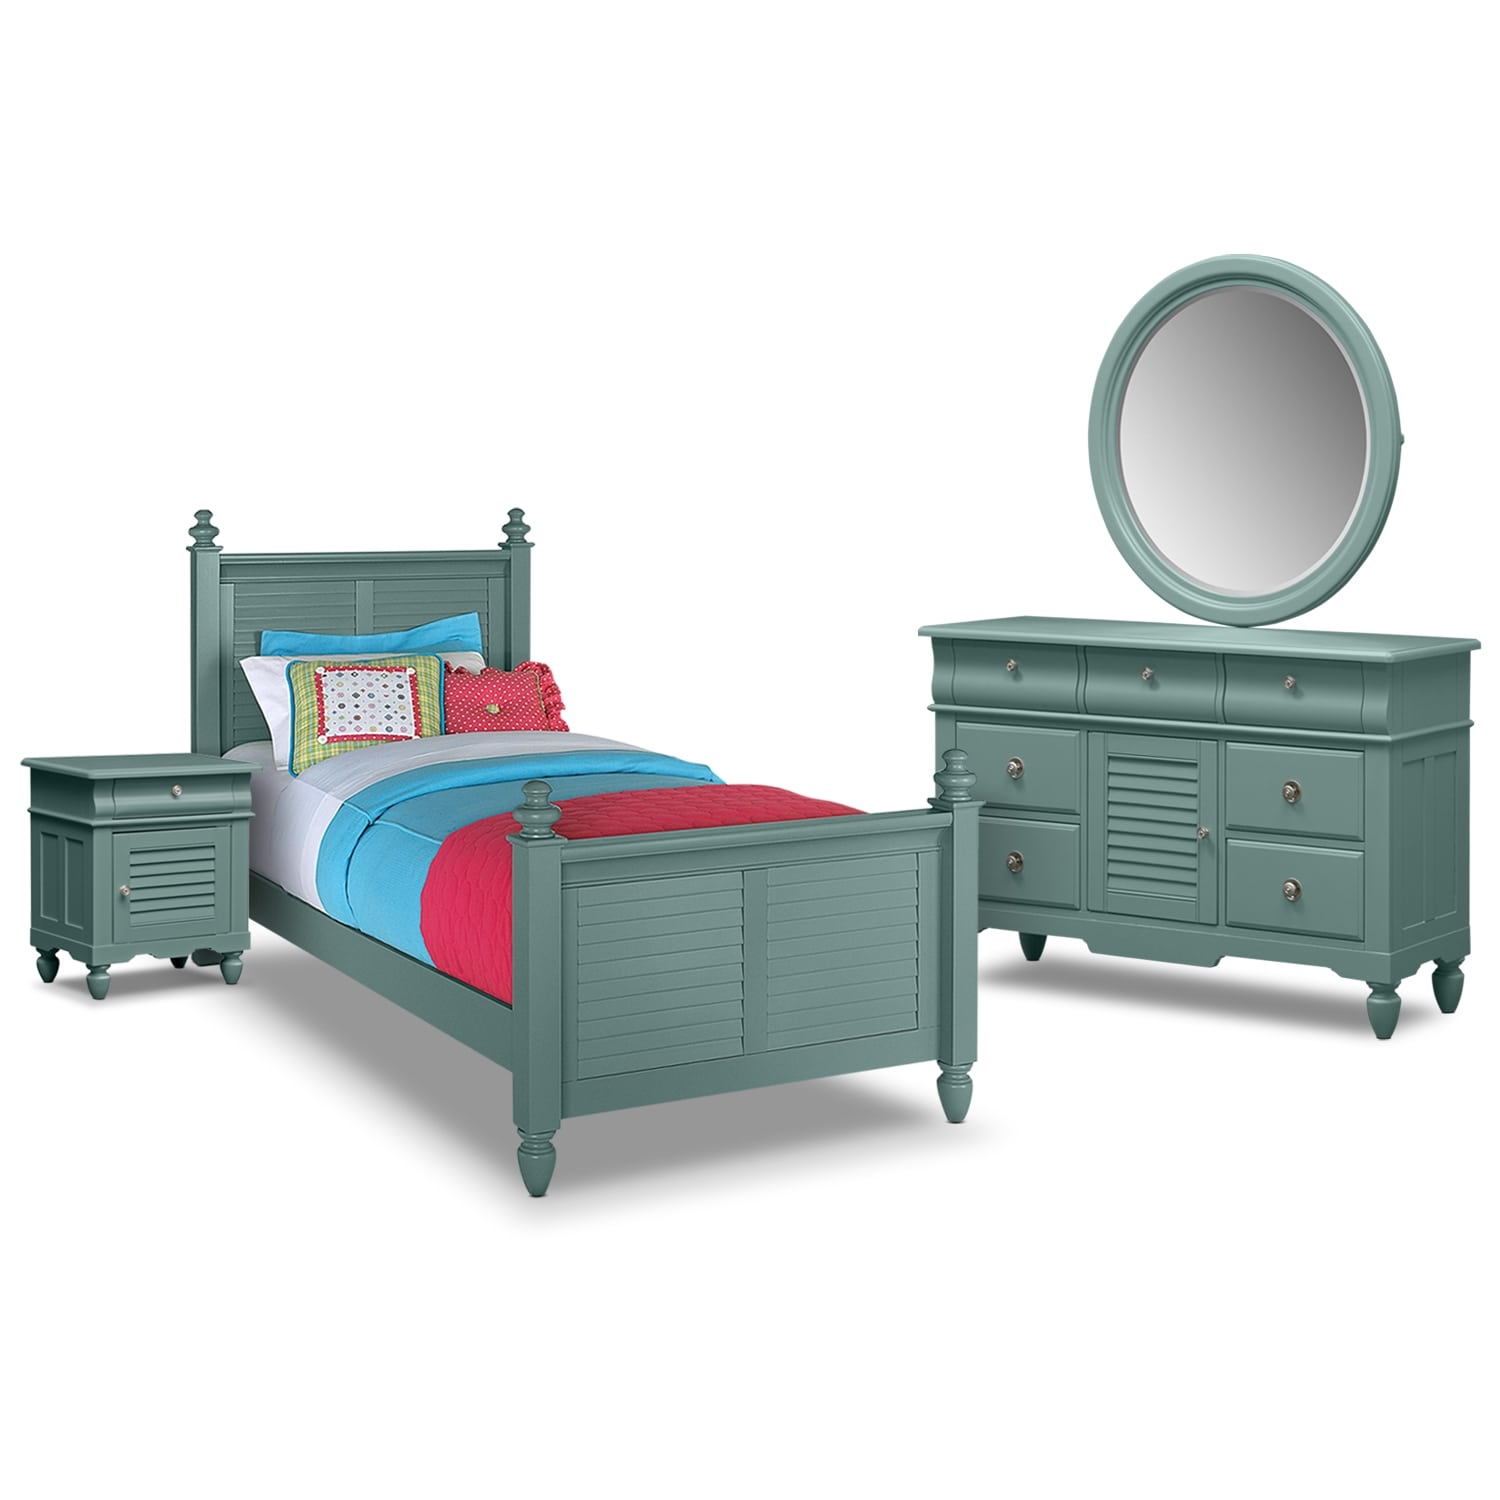 Kids Furniture - Seaside 6-Piece Full Bedroom Set - Blue